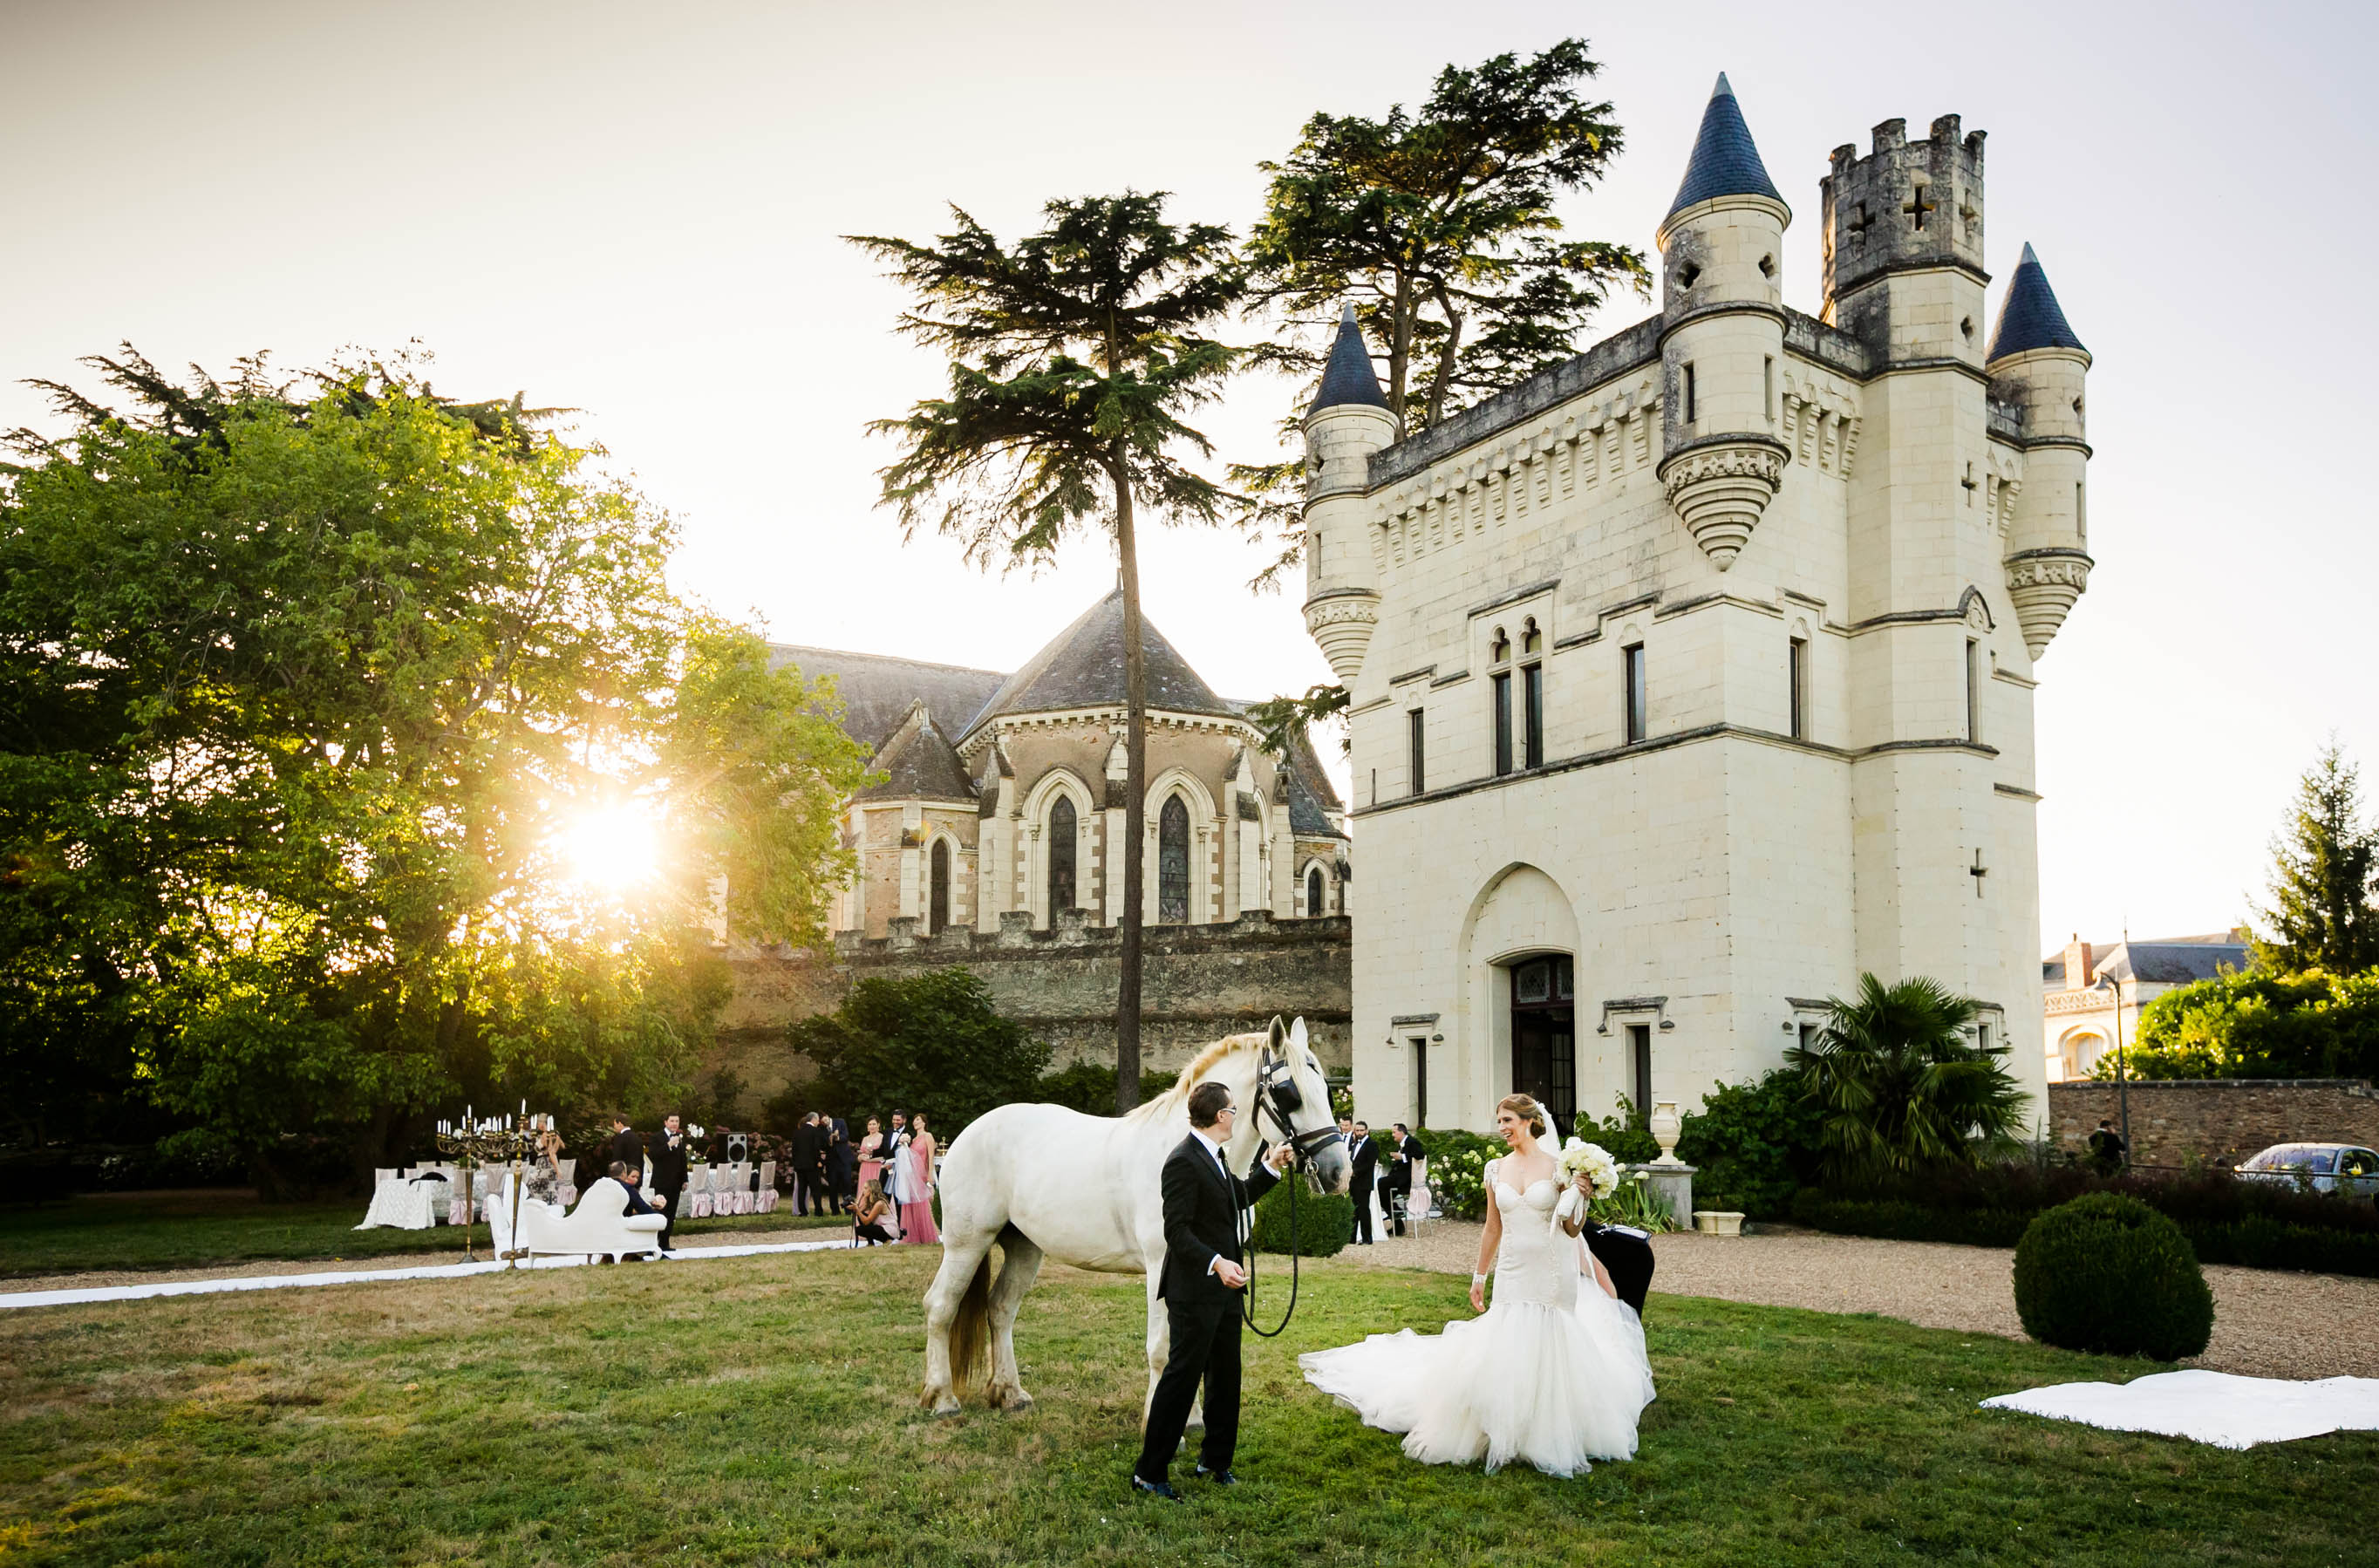 wedding with couple and horse